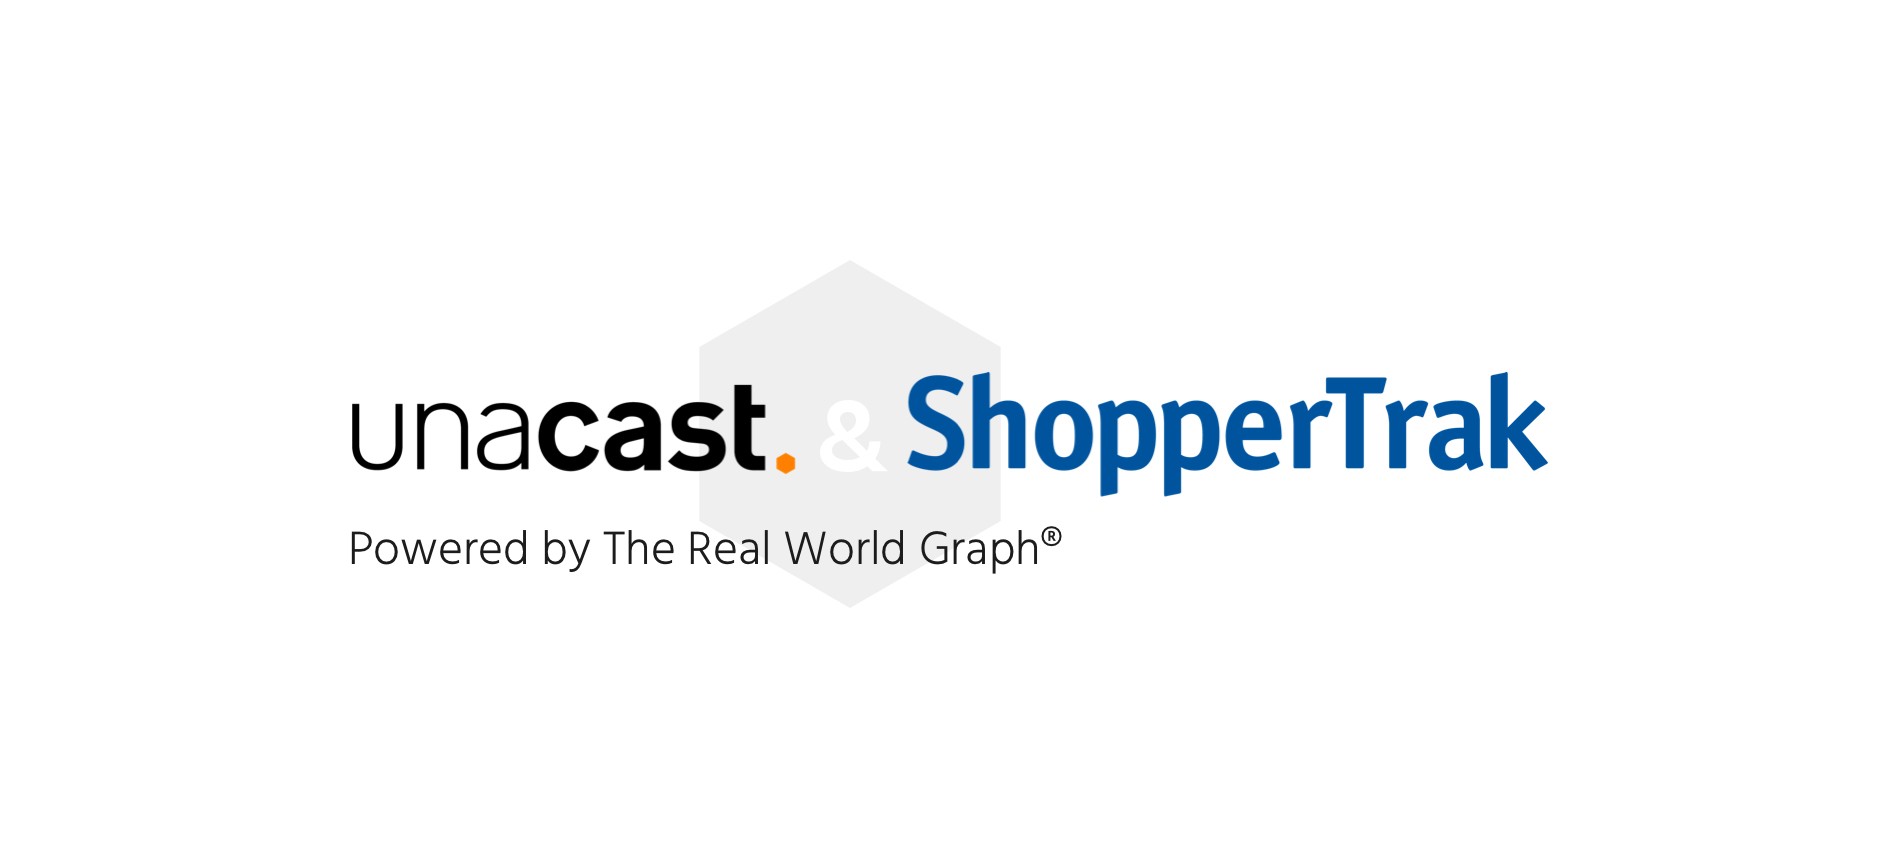 Unacast Announces Global Partnership with ShopperTrak